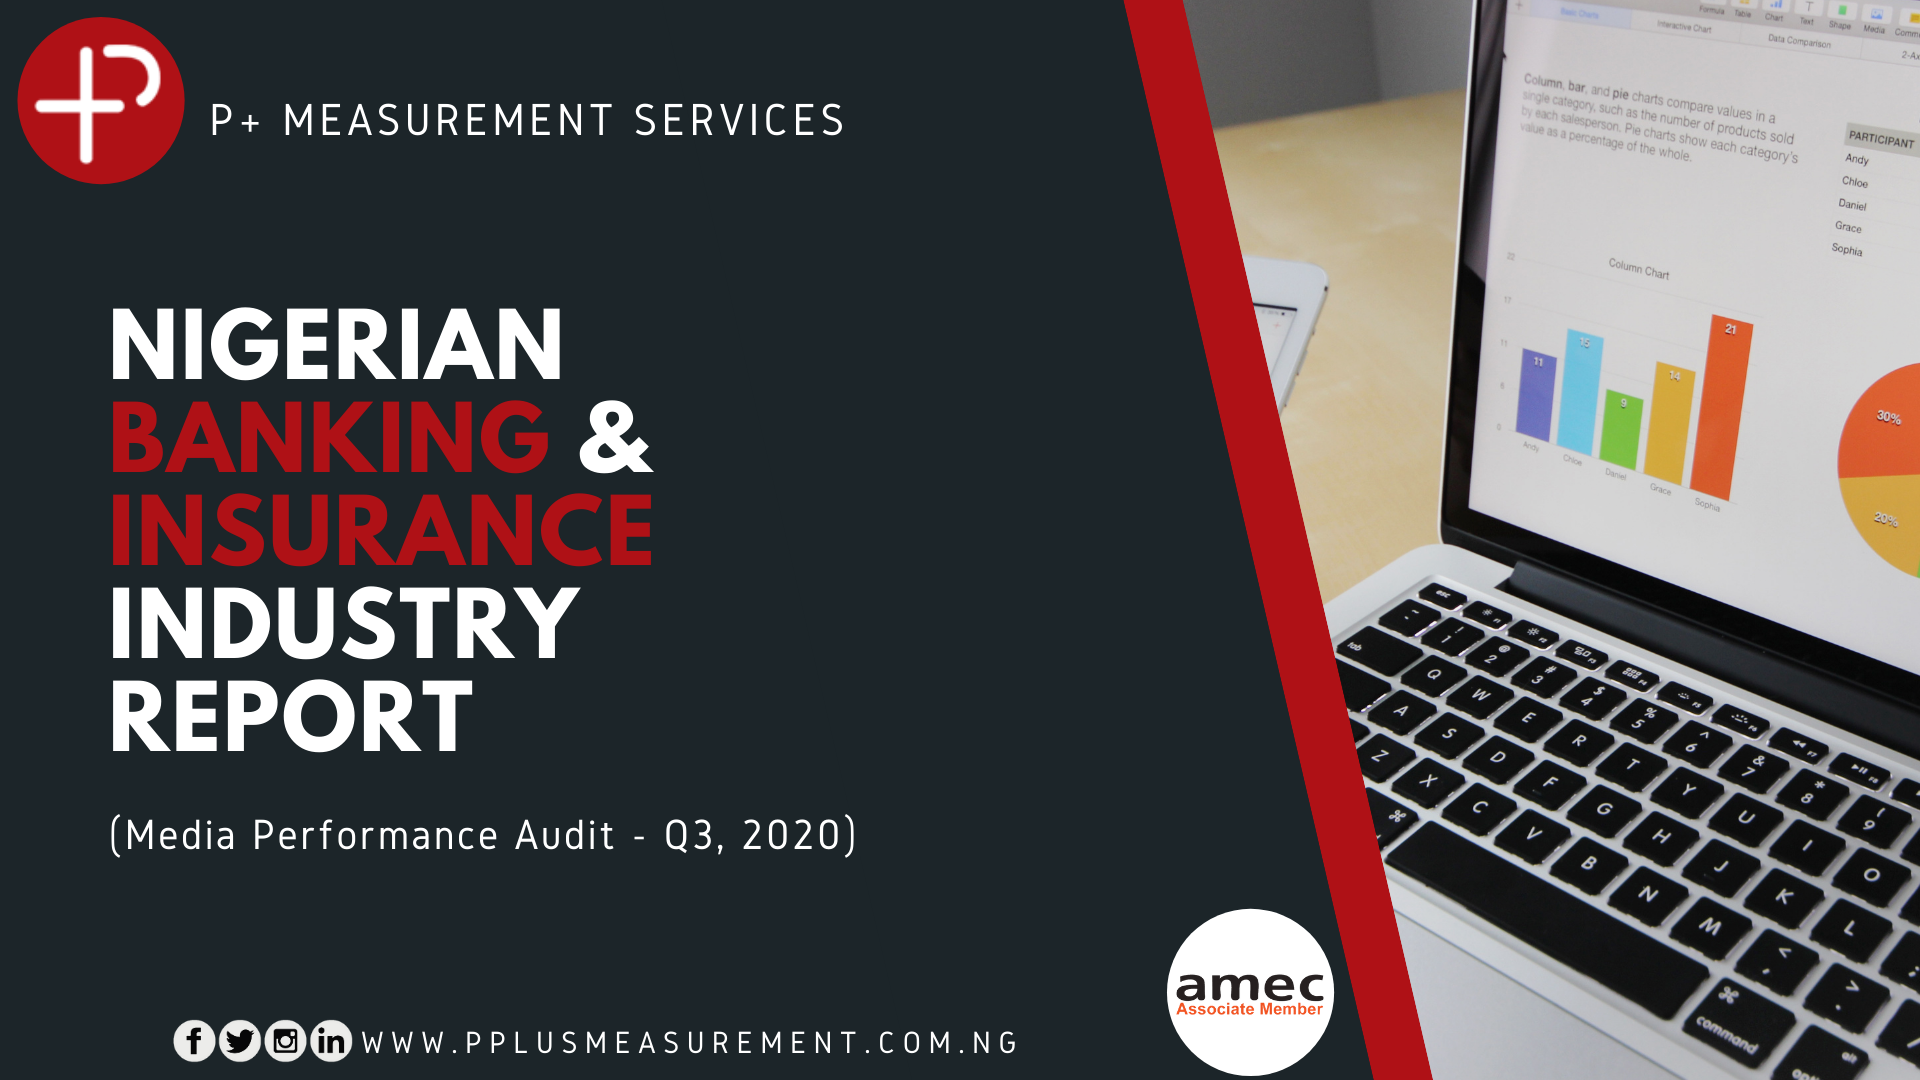 PR measurement agency releases Q3 2020 Media Audit report on Nigerian Banking and Insurance Industry